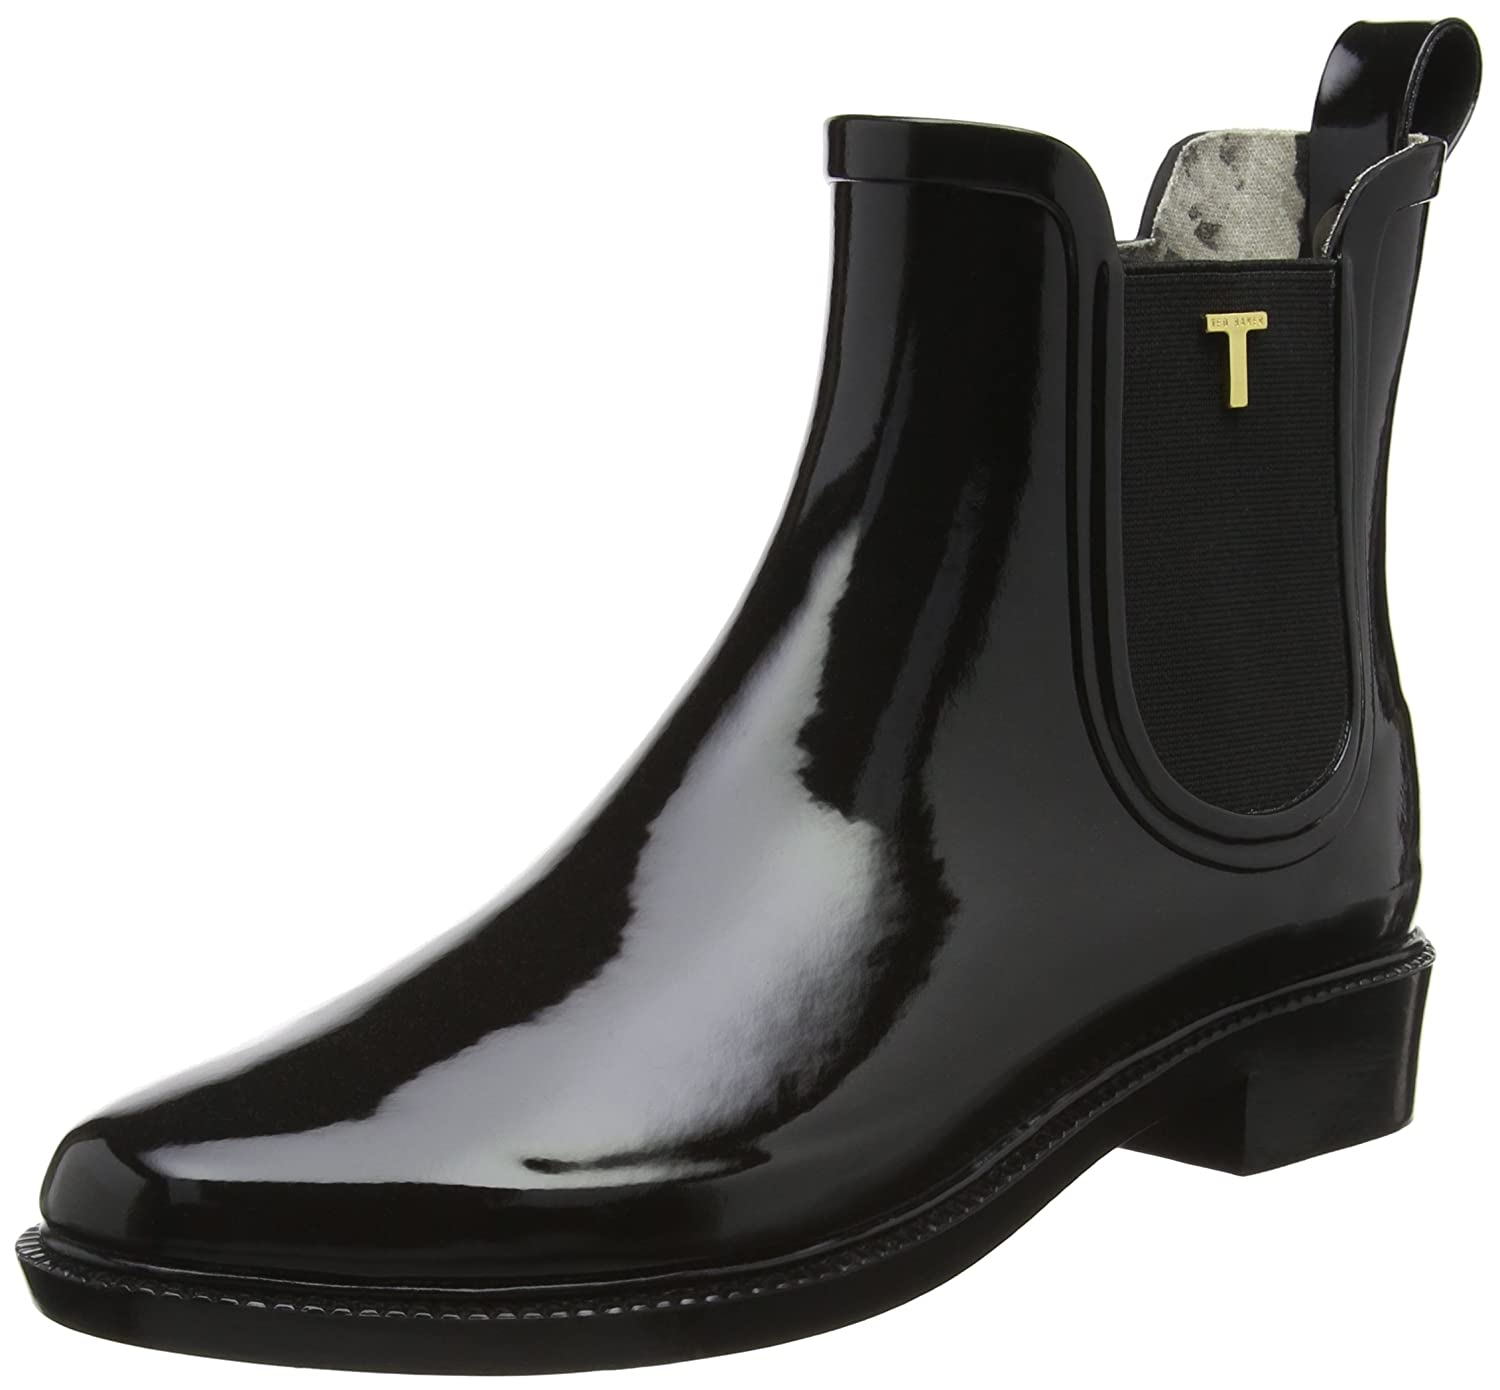 342d34014fa43c Ted Baker Womens Black Lyran Chelsea Welly Boots  Amazon.co.uk ...